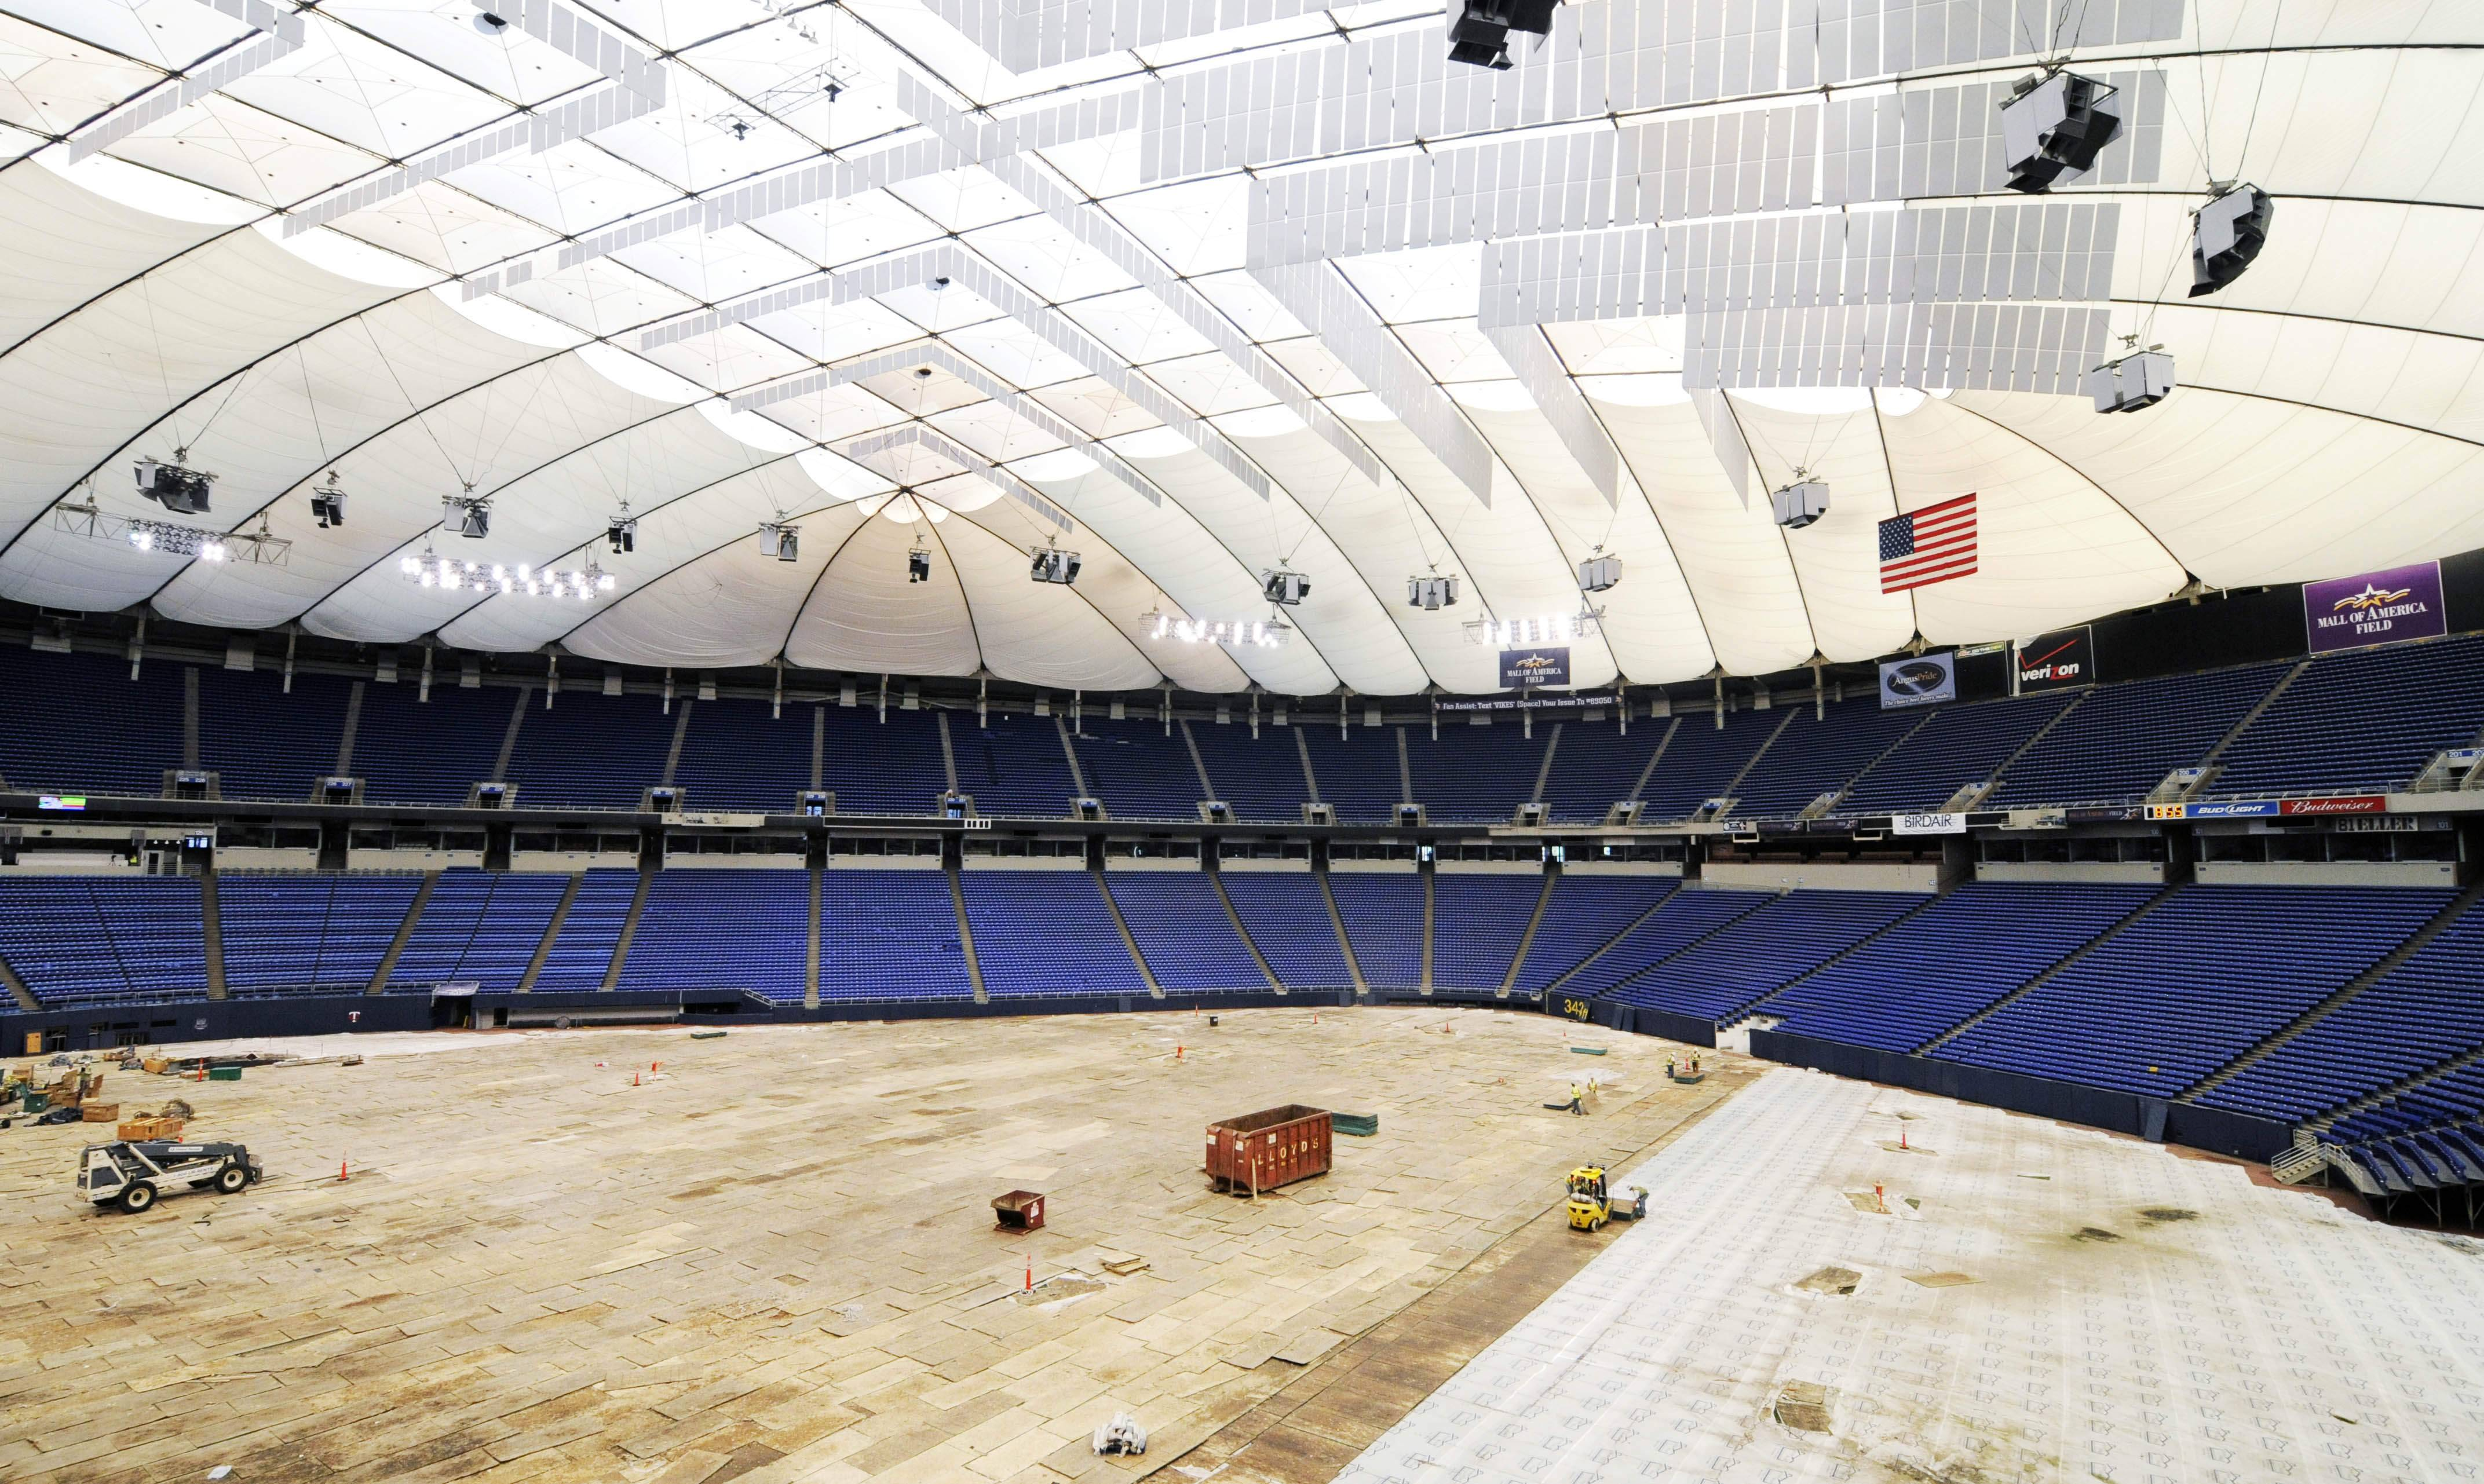 The new roof of the Metrodome, home of the Minnesota Vikings NFL football team, is in place after it was inflated for the first time Wednesday in Minneapolis. The original roof collapsed last December after a snowstorm dumped 17 inches of snow. The hanging grey panels help provide better acoustics.